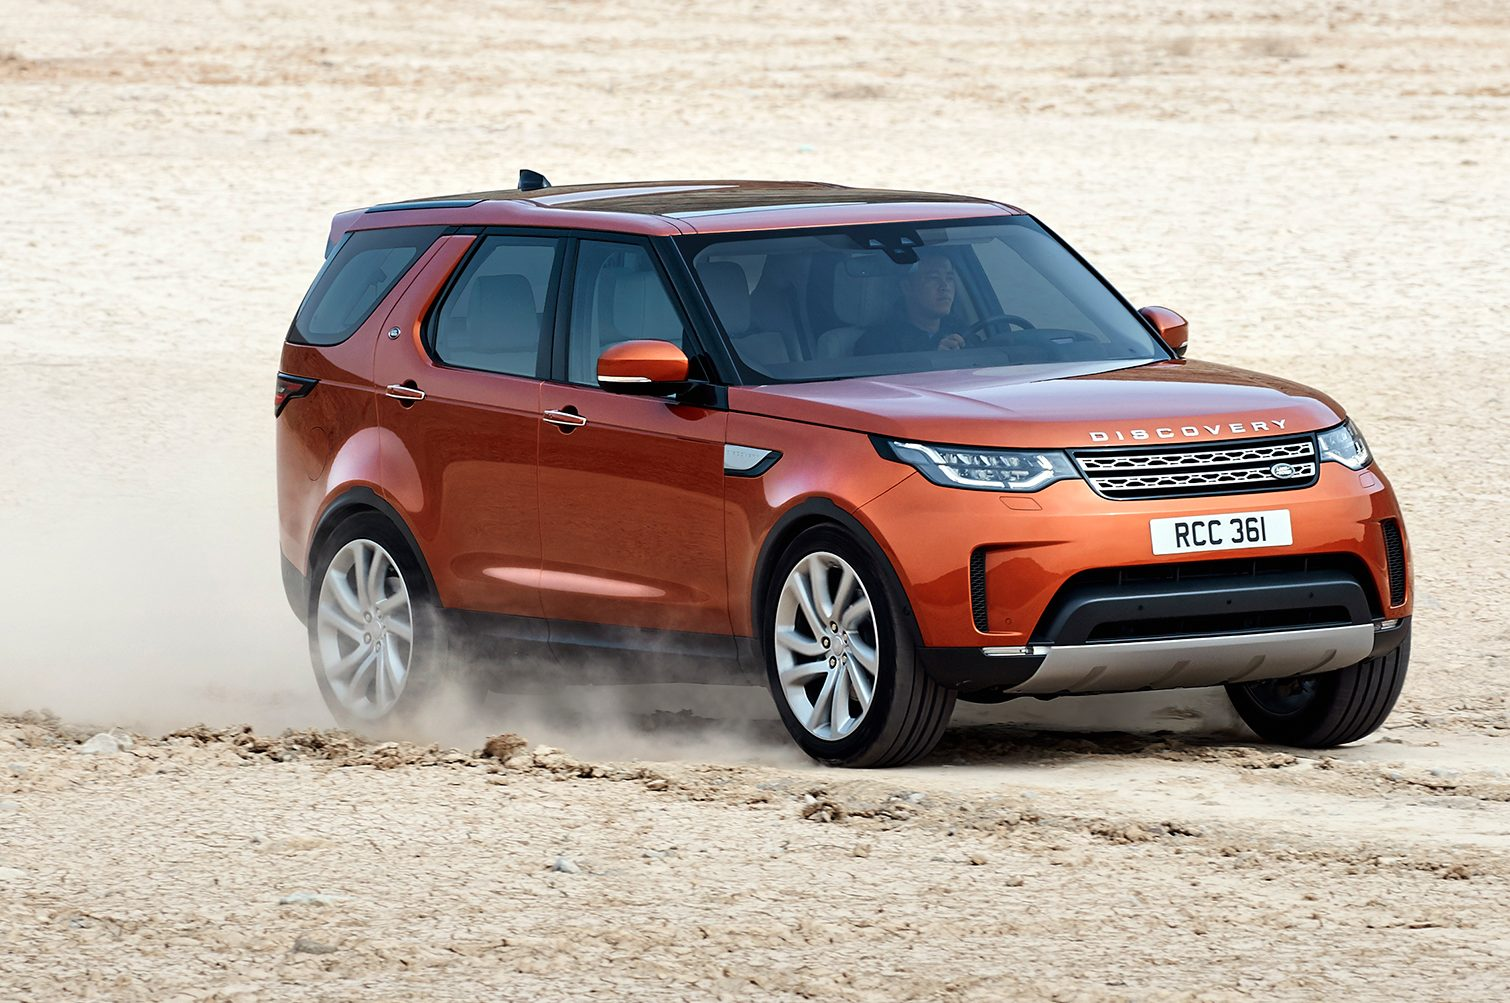 2017 Land Rover Discovery Front Three Quarter In Motion E1474649462620